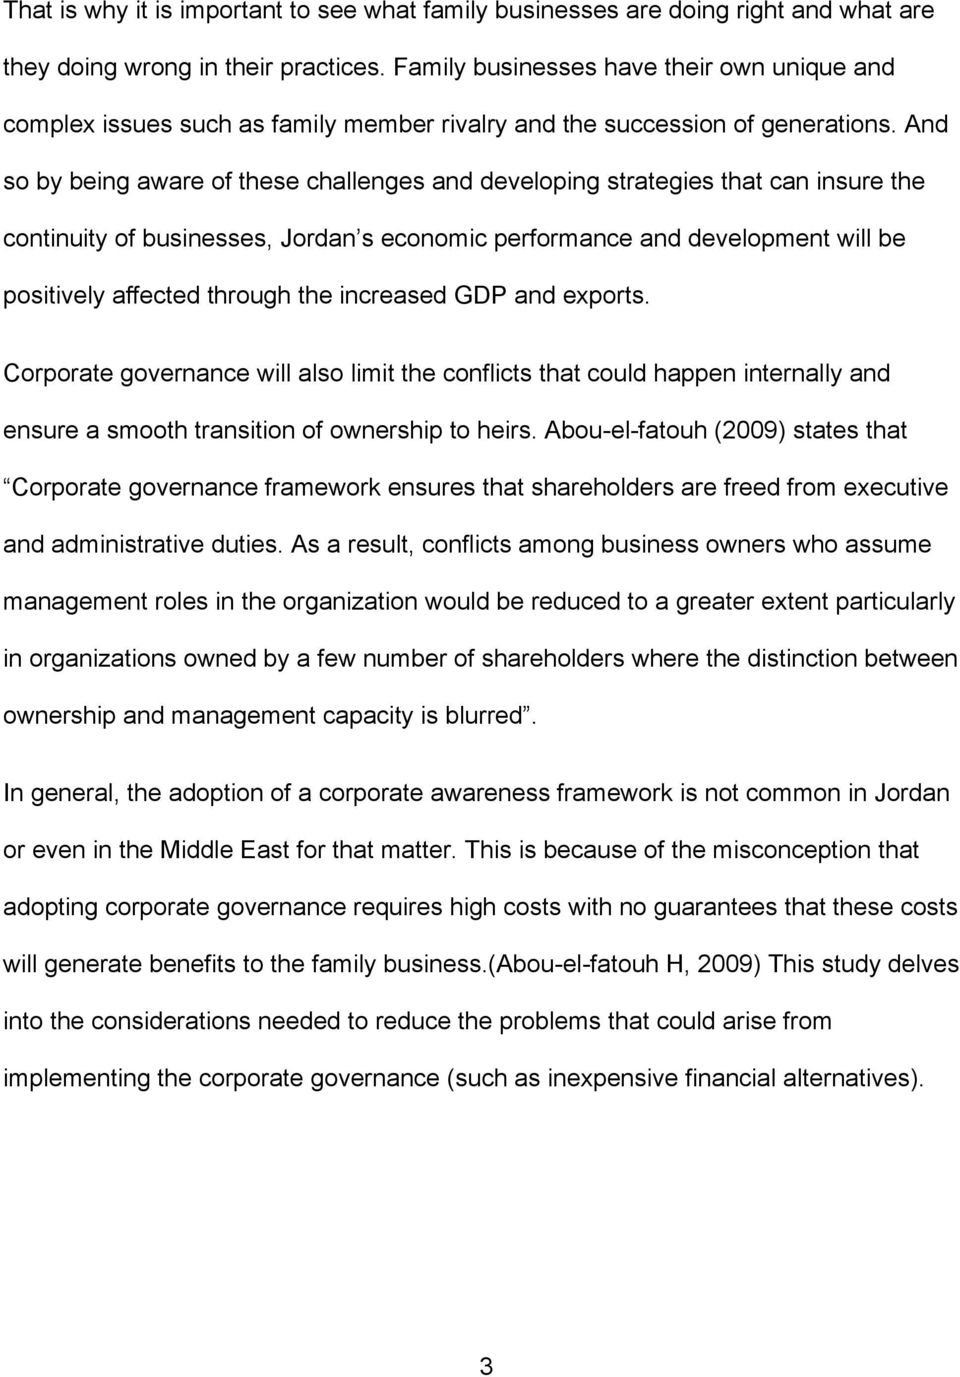 And so by being aware of these challenges and developing strategies that can insure the continuity of businesses, Jordan s economic performance and development will be positively affected through the